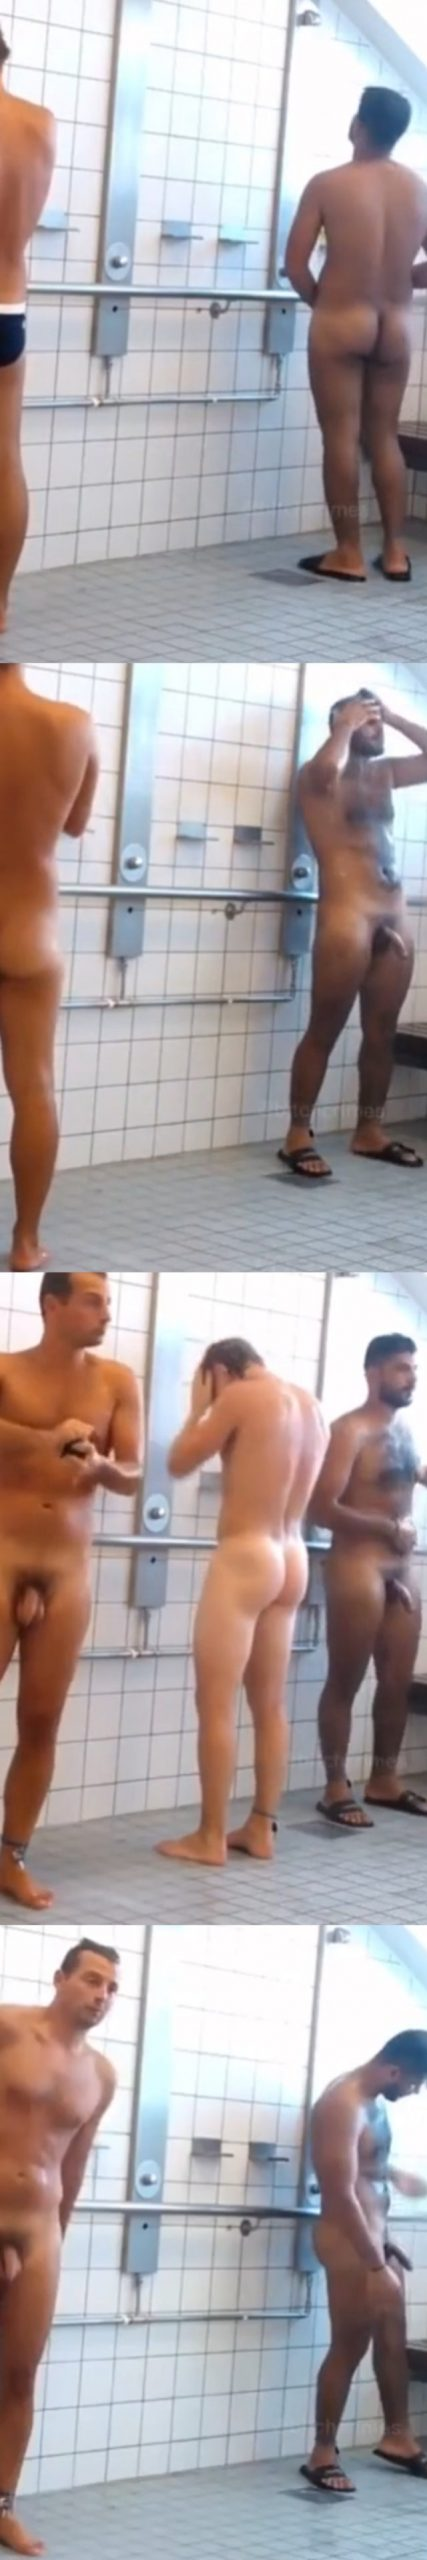 exhibitionist stud showing off boner in gym communal shower